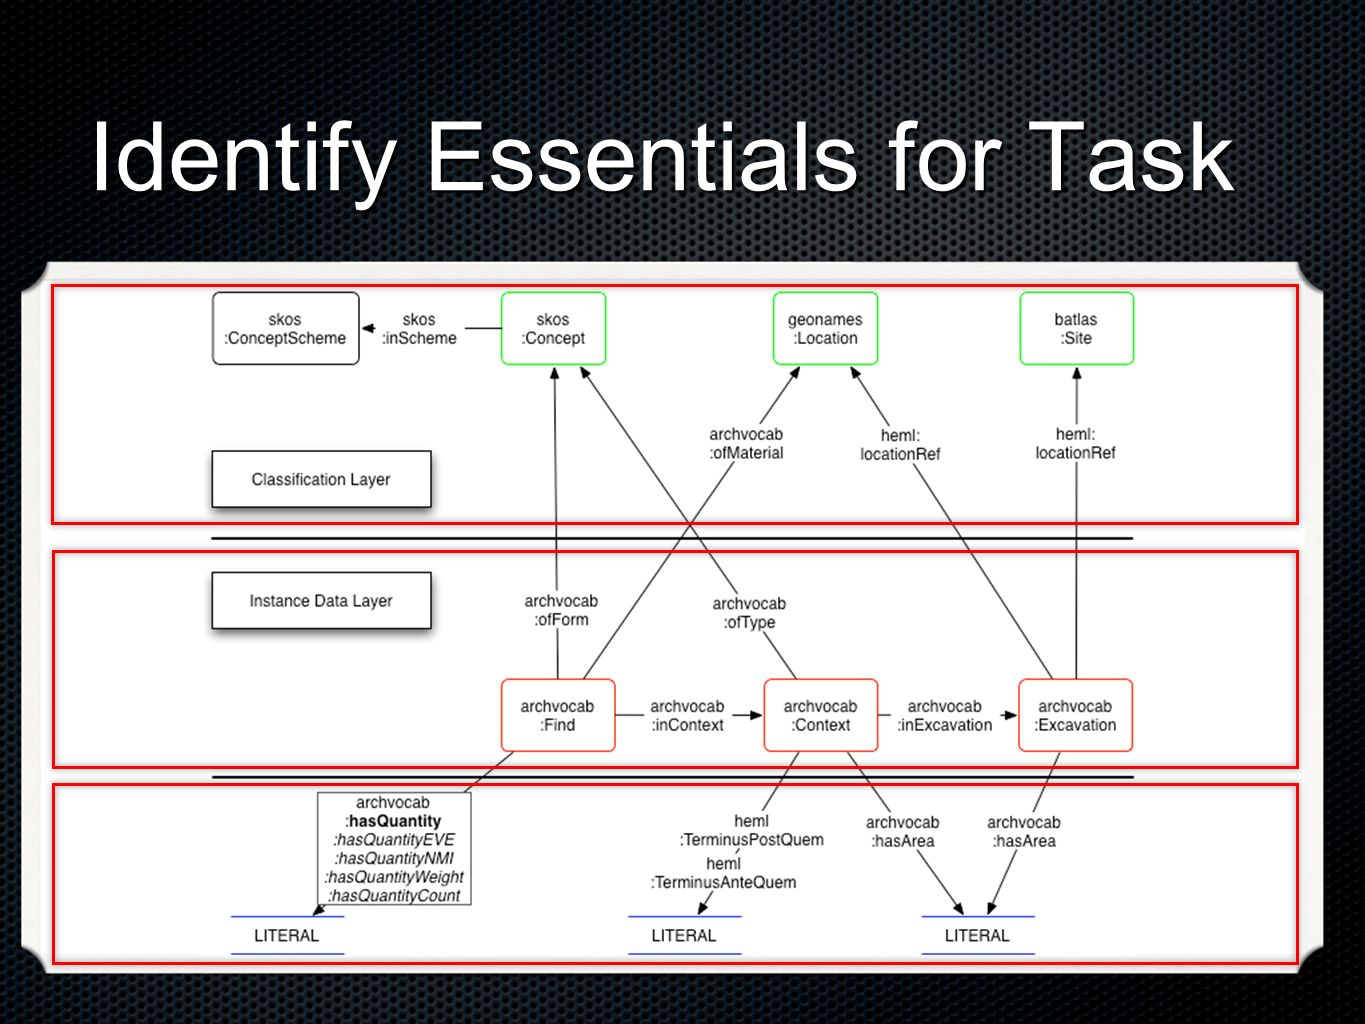 Identify Essentials for Task